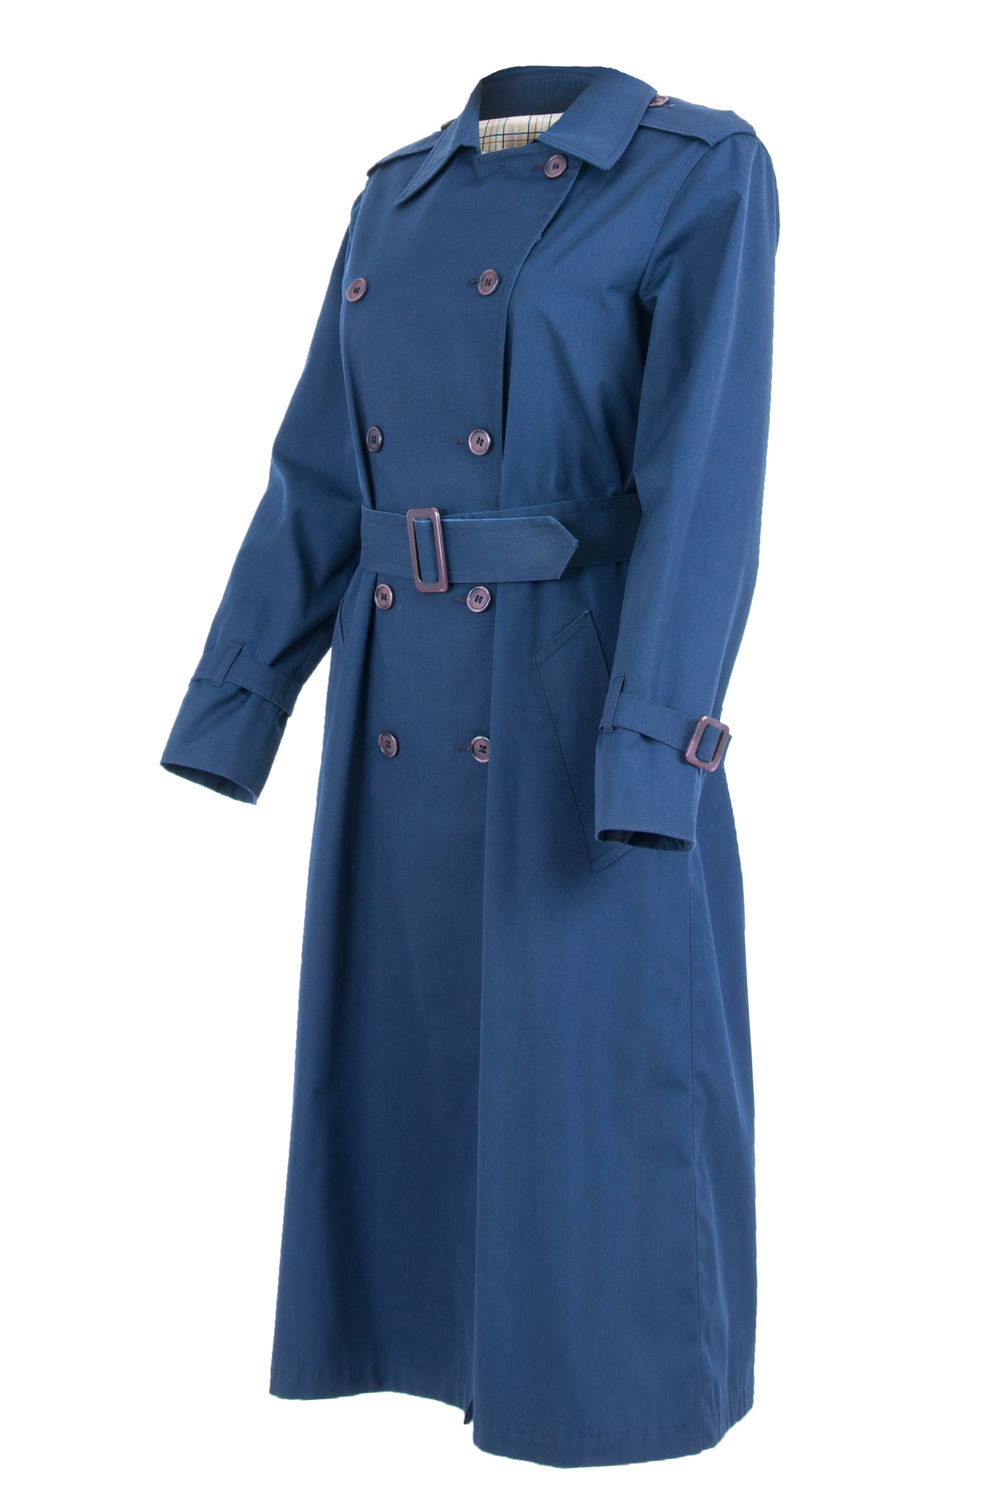 vintage blue trench coat with double breasted button closure and purple belt